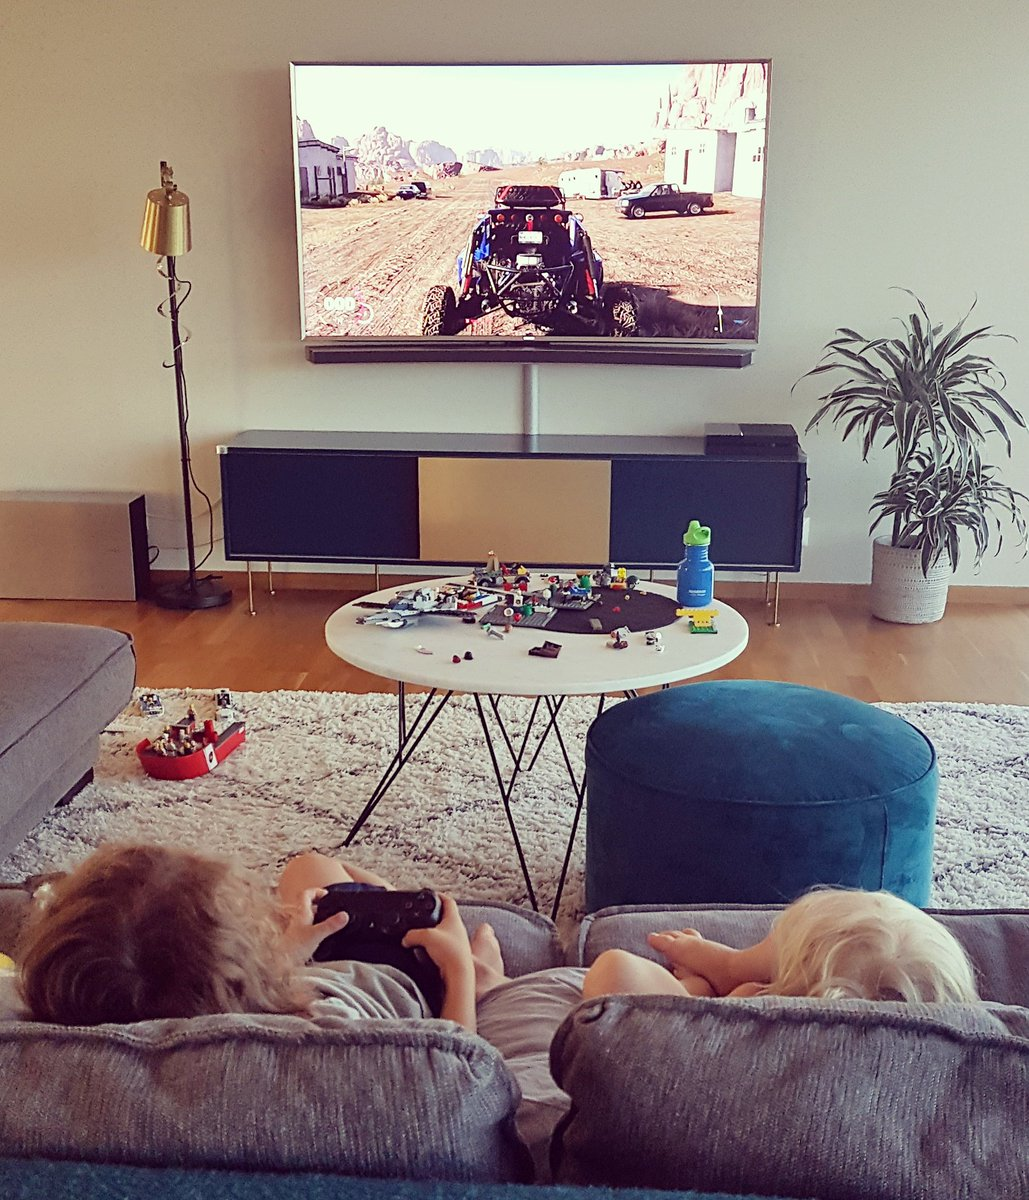 Playdate! LEGO! Also thank you @ubisoftnordic for The Crew 2! Its awesome! <3 https://t.co/YI04FW5eWE